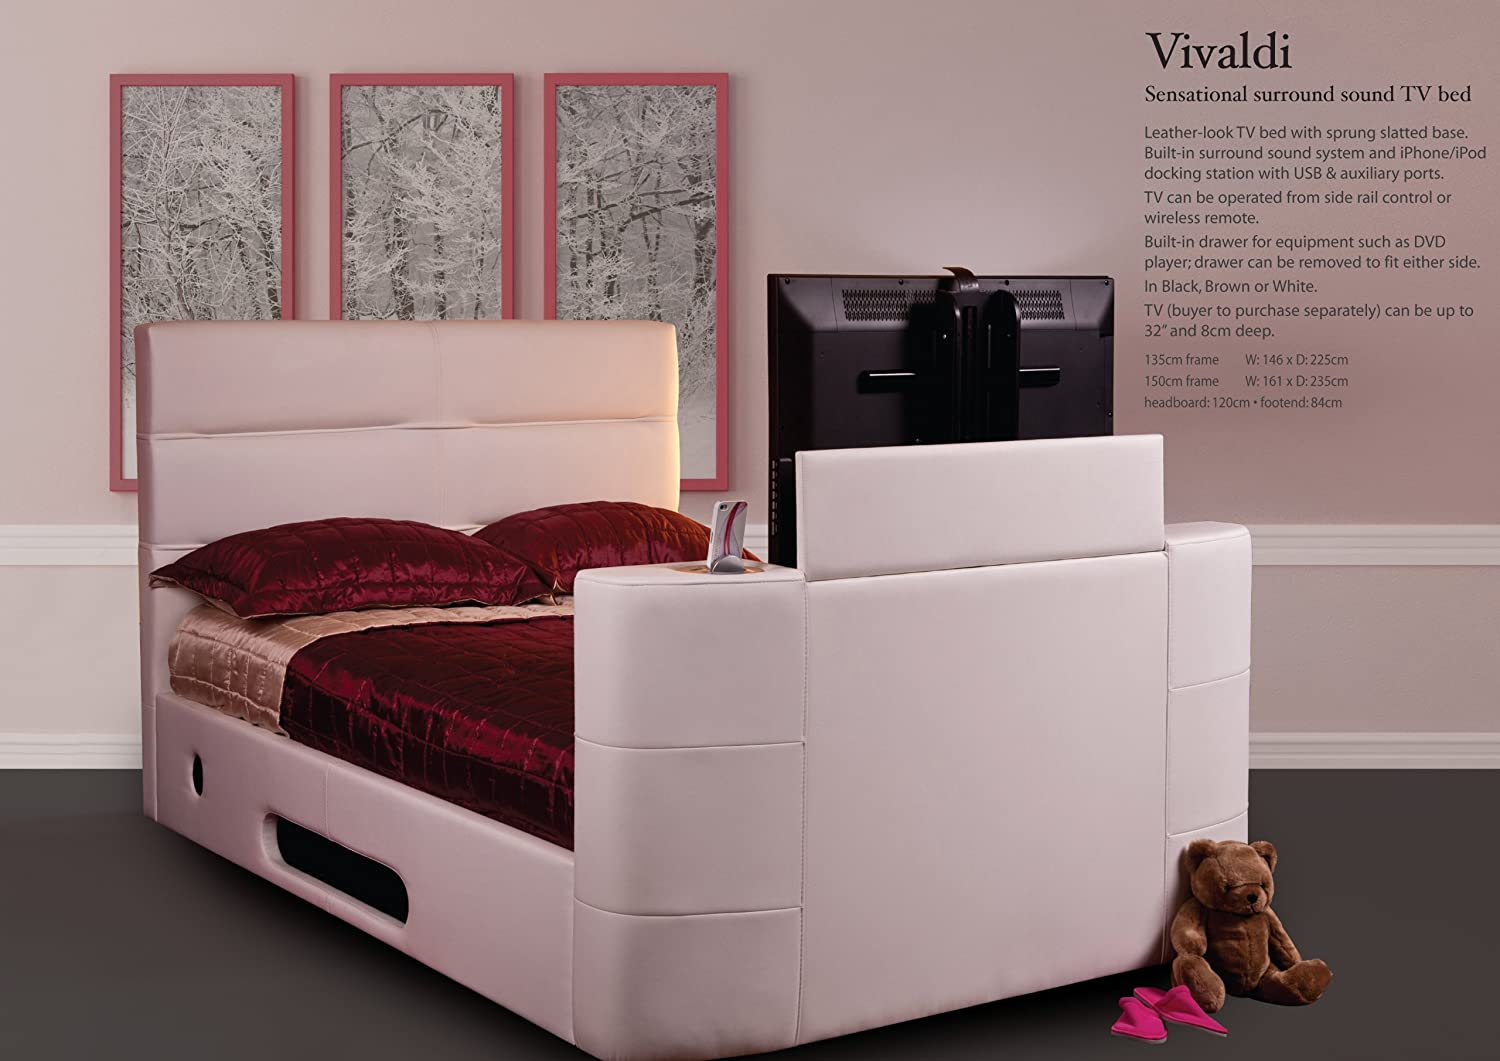 Bed With Tv Built In Sweet Dreams Vivaldi Surround Sound King Size Tv Bed White